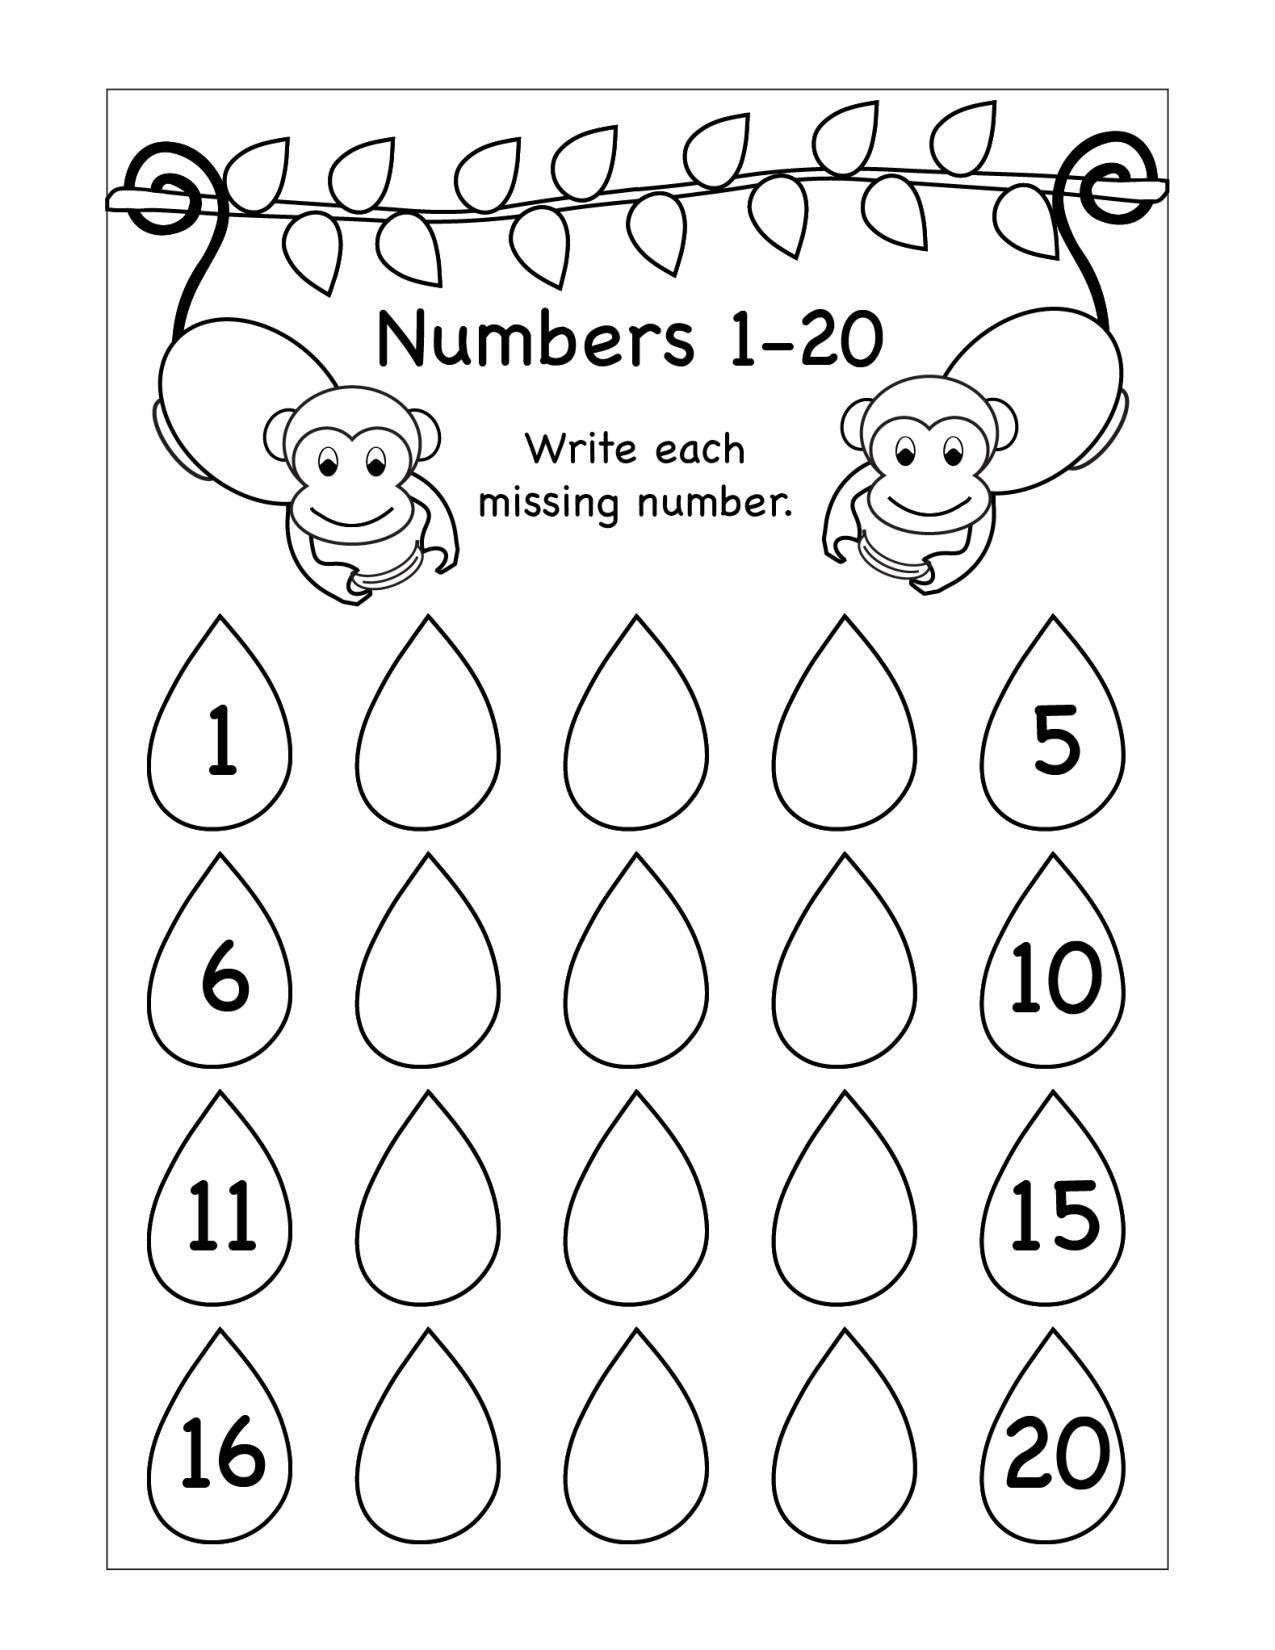 Missing Number Multiplication Worksheets Worksheets Kingandsullivan Writing Numbers assessment